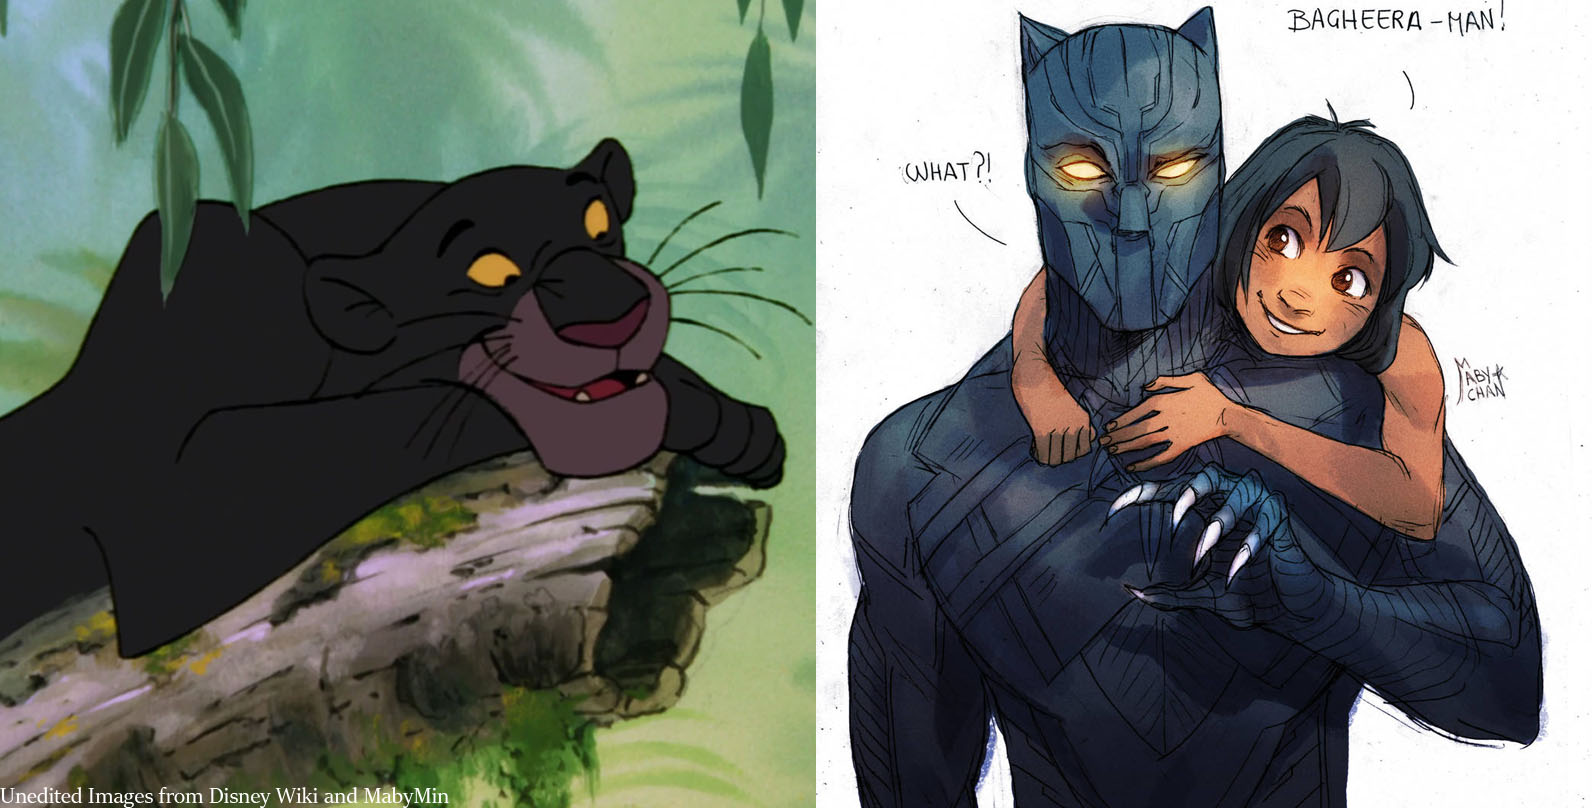 Ugaiz remember Bagheera the panther, right?